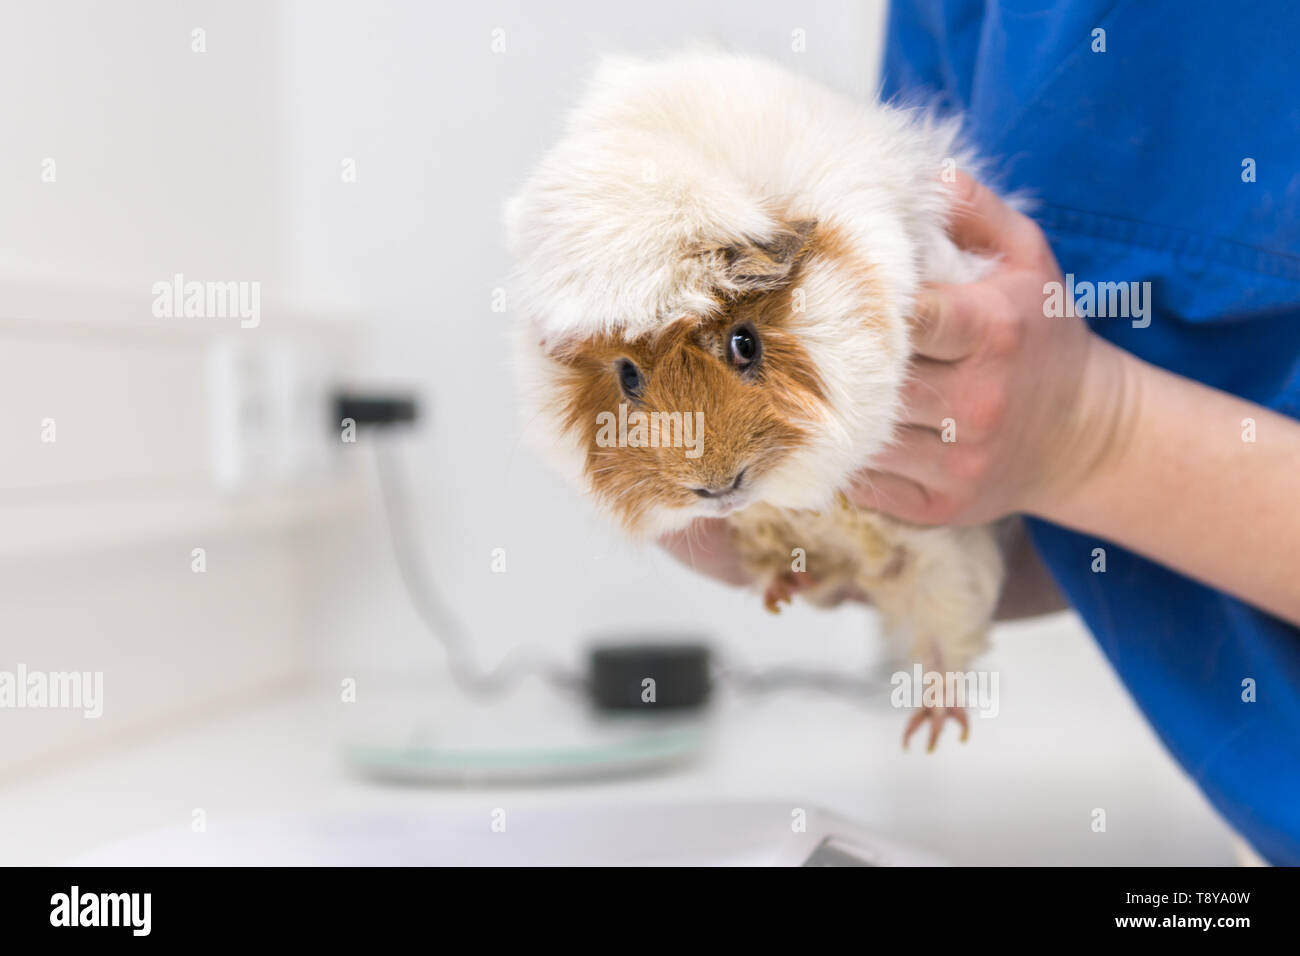 Cute Guinea pig in the veterinary practice is examined by the veterinarian Stock Photo